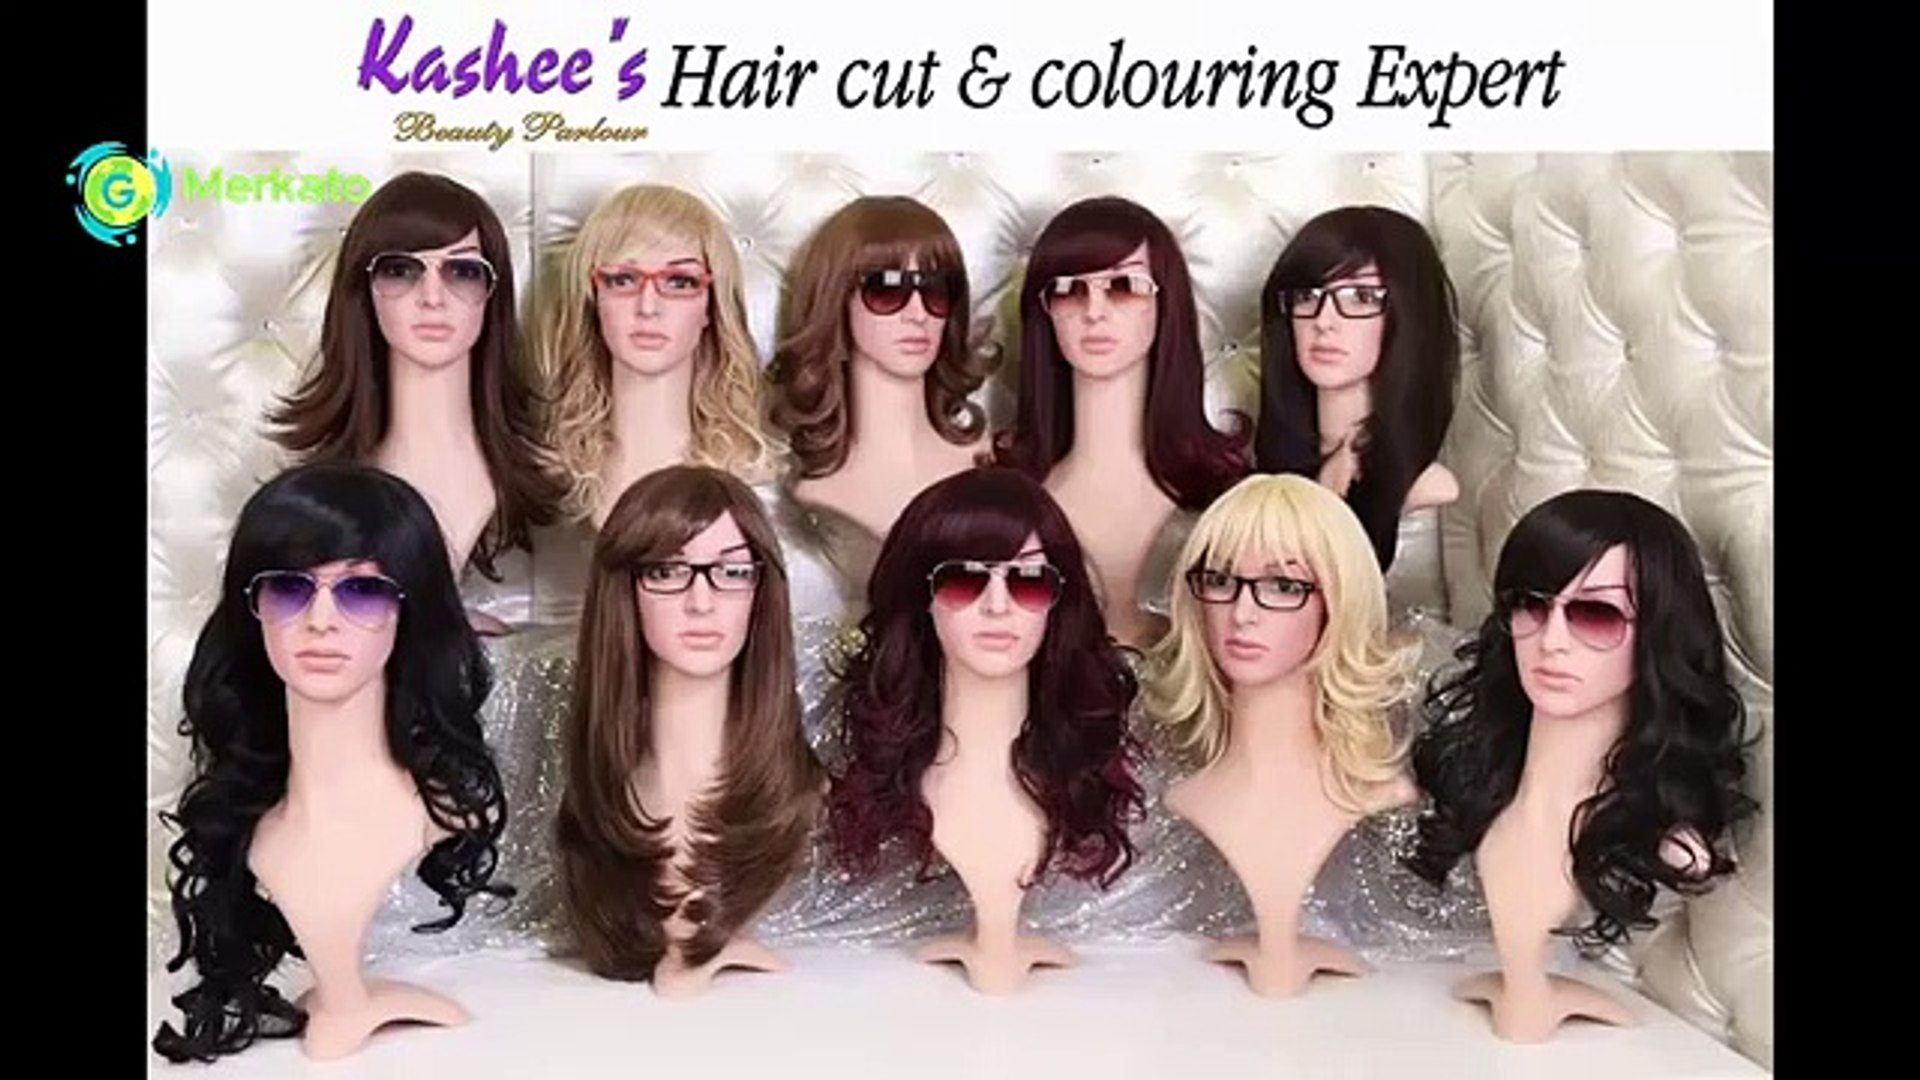 Gorgeous Hair Cut Haircolor By Kashee S Beauty Parlor Haircut Tutorial 2017 Must Watch Beauty Tips Video Dailymotion